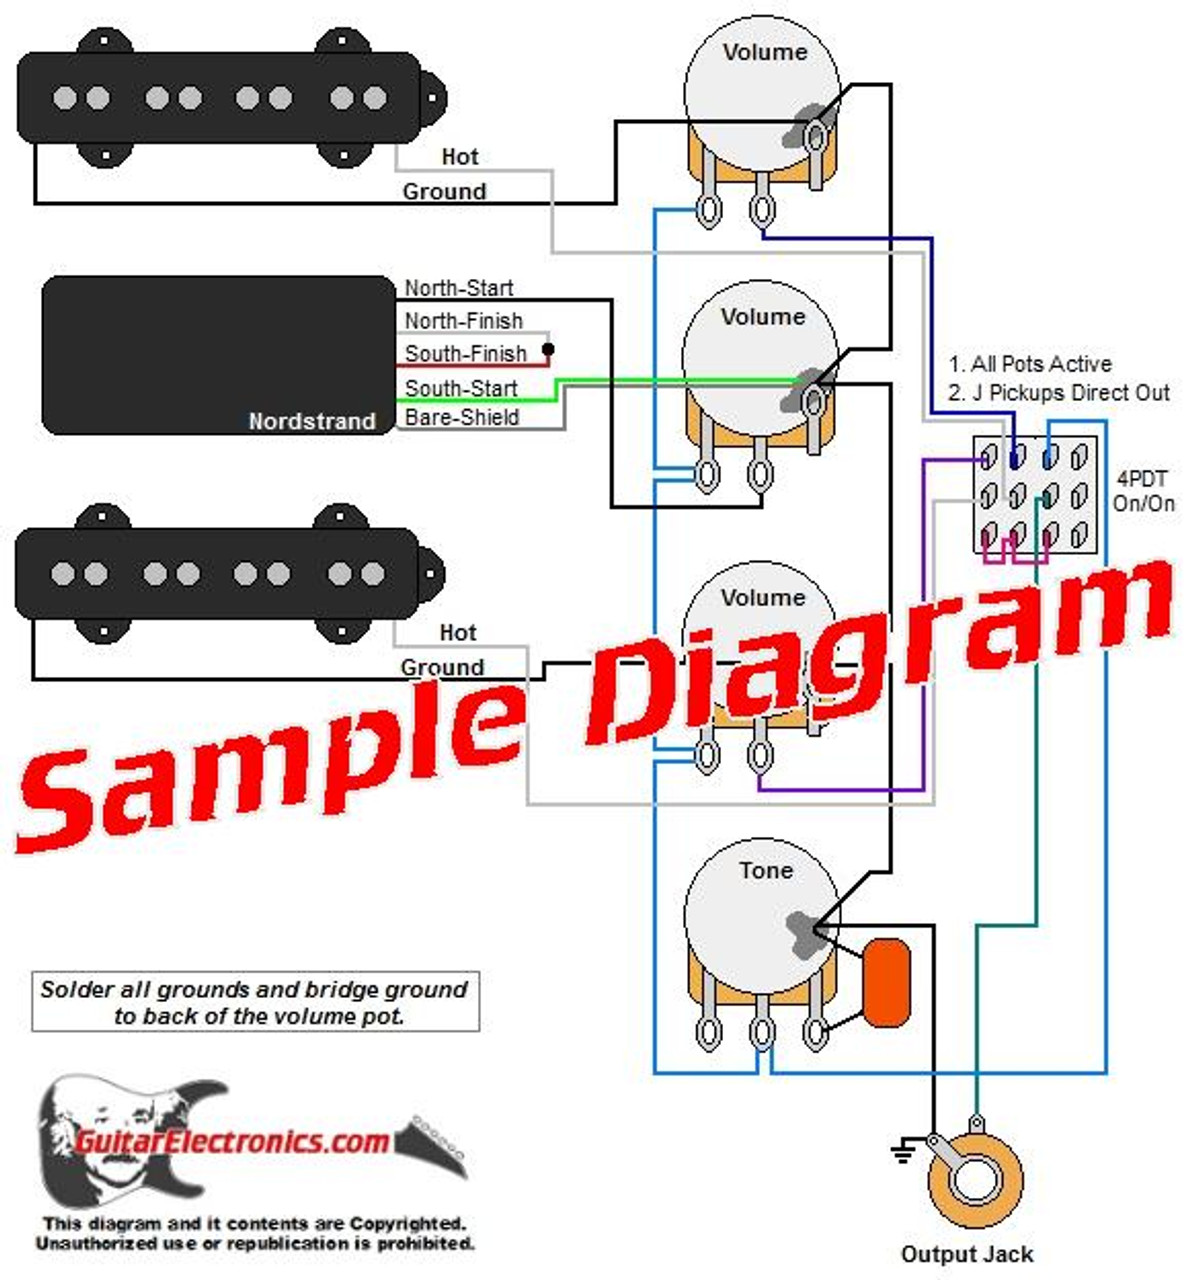 3 Pickup Custom Designed Guitar Wiring Diagrams | Bass Humbucker Wiring Diagram |  | Guitar Electronics